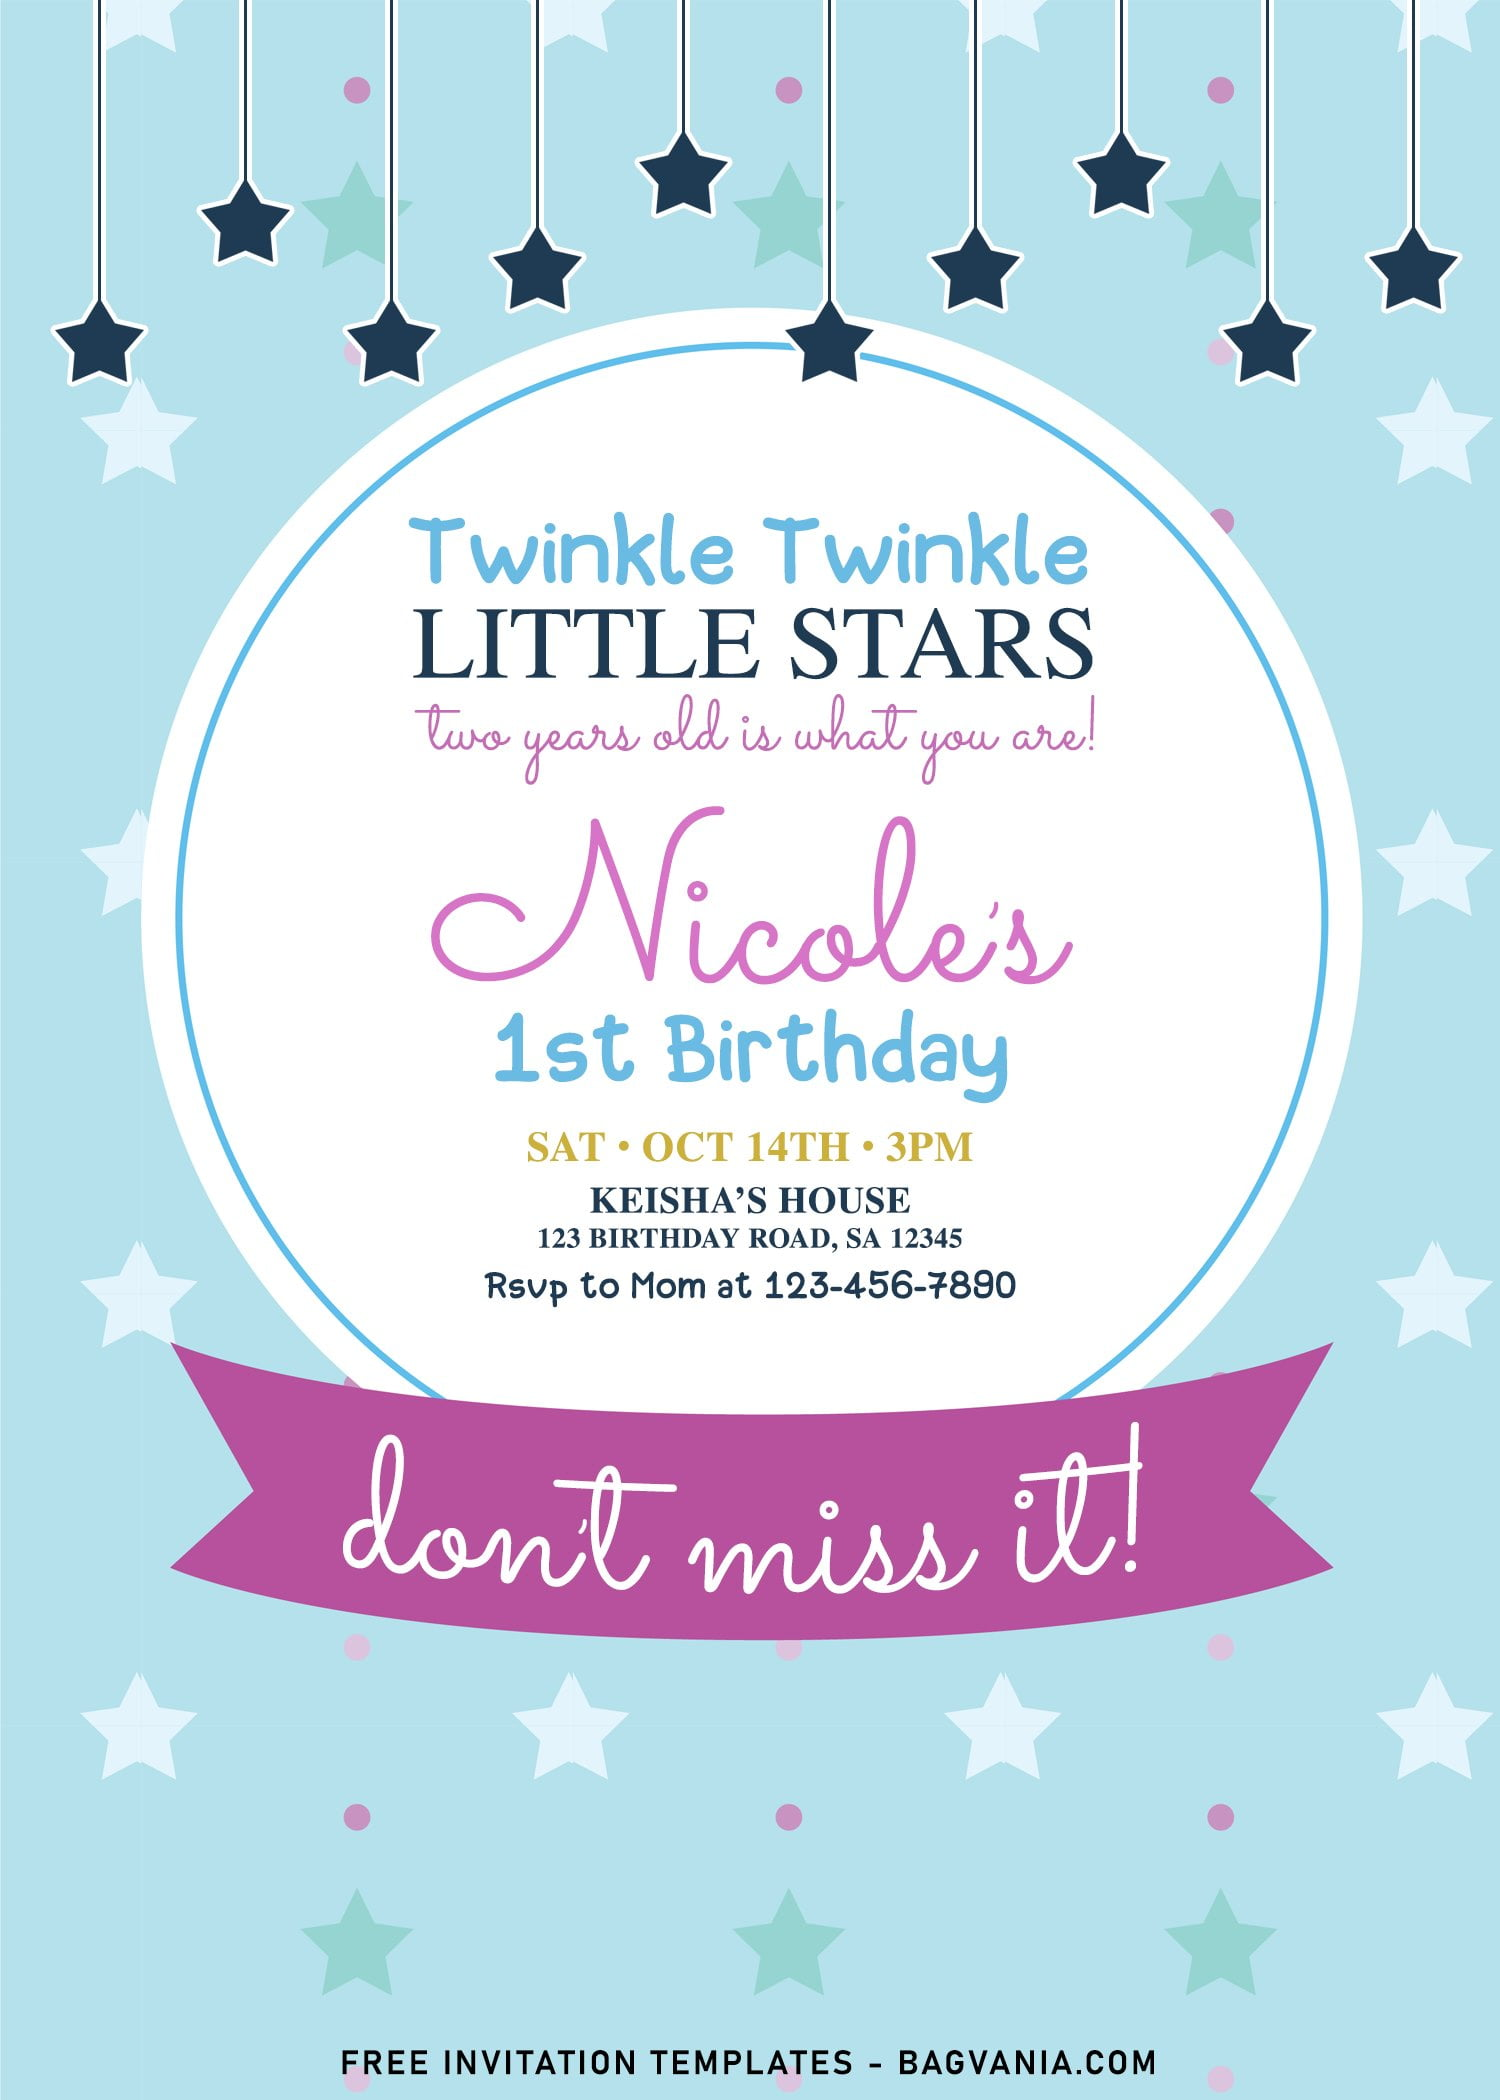 https www bagvania com 7 twinkle twinkle little stars birthday invitation templates for any ages html